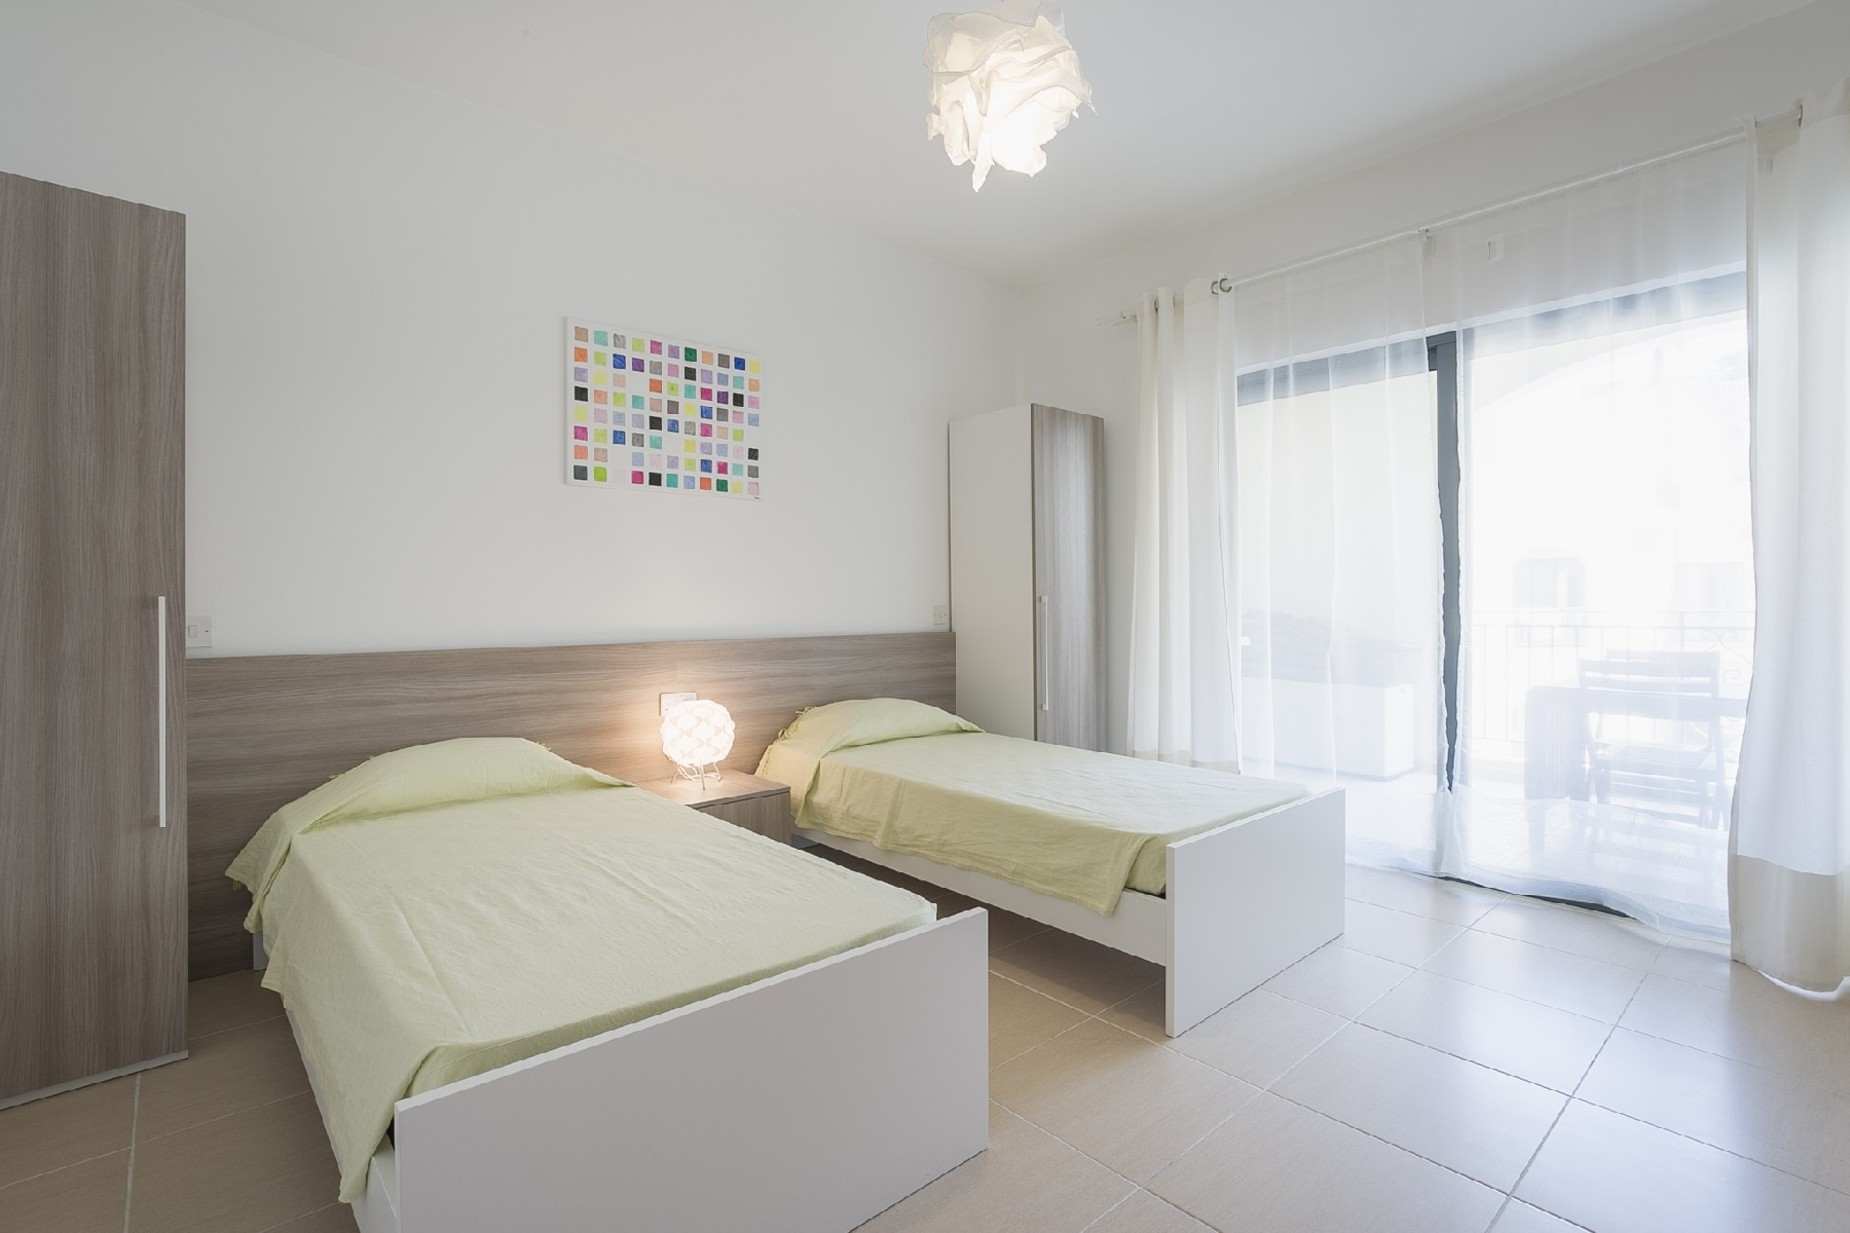 2 bed Apartment For Rent in Mellieha, Mellieha - thumb 15